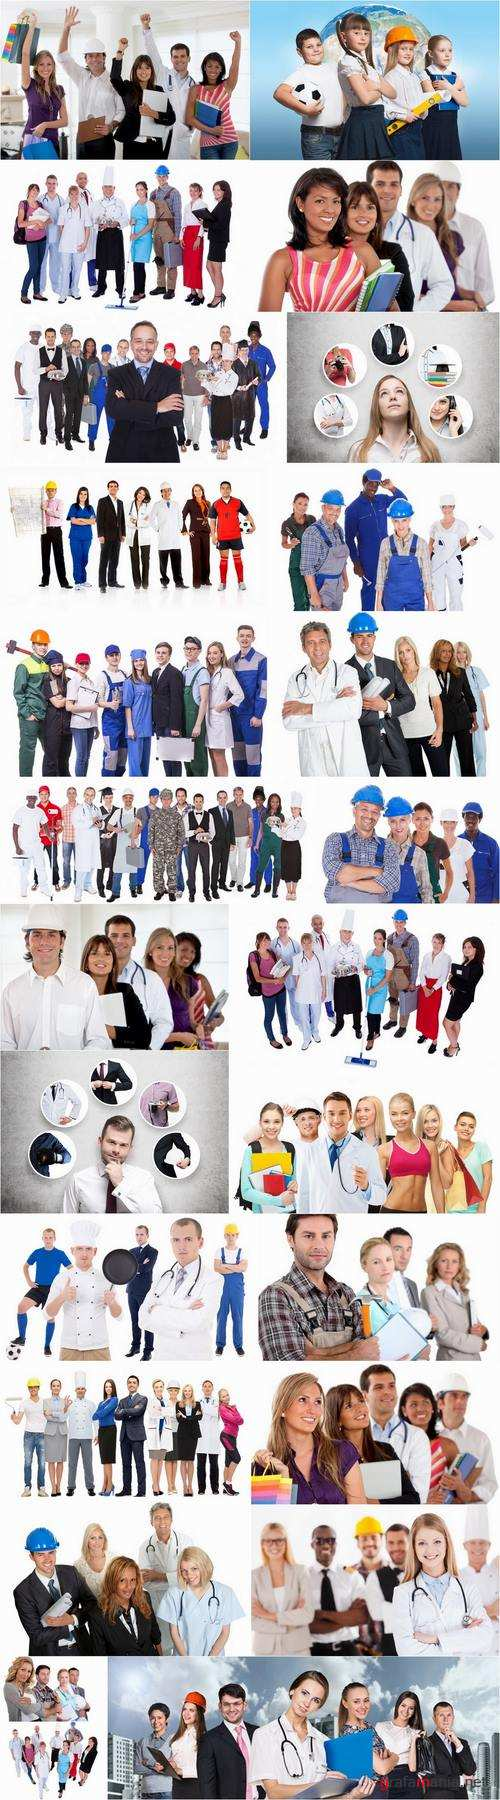 Different professions builder doctor working businessman 25 HQ Jpeg